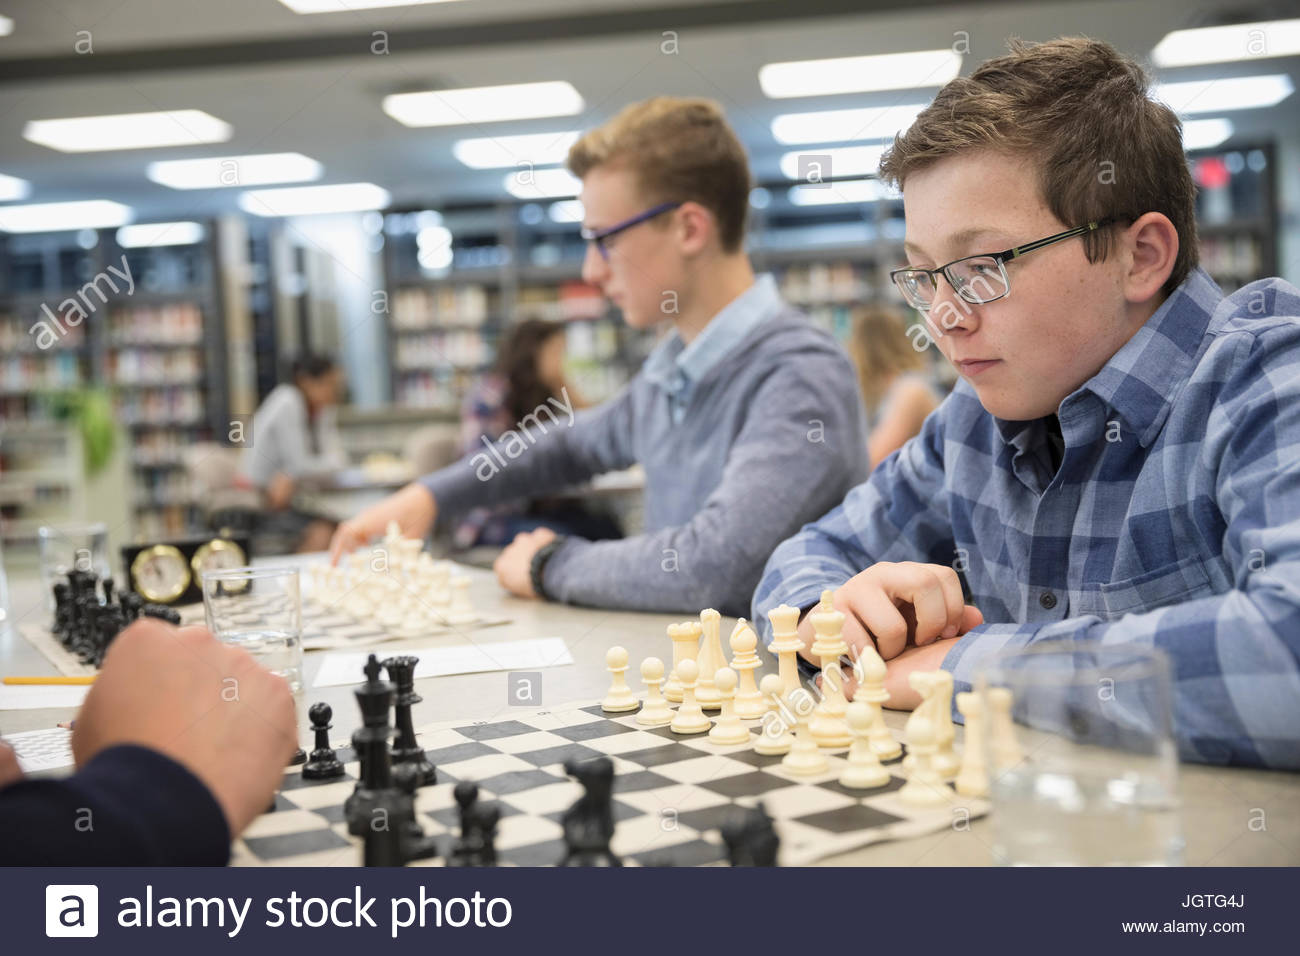 Focused male middle school student playing chess in chess club - Stock Image